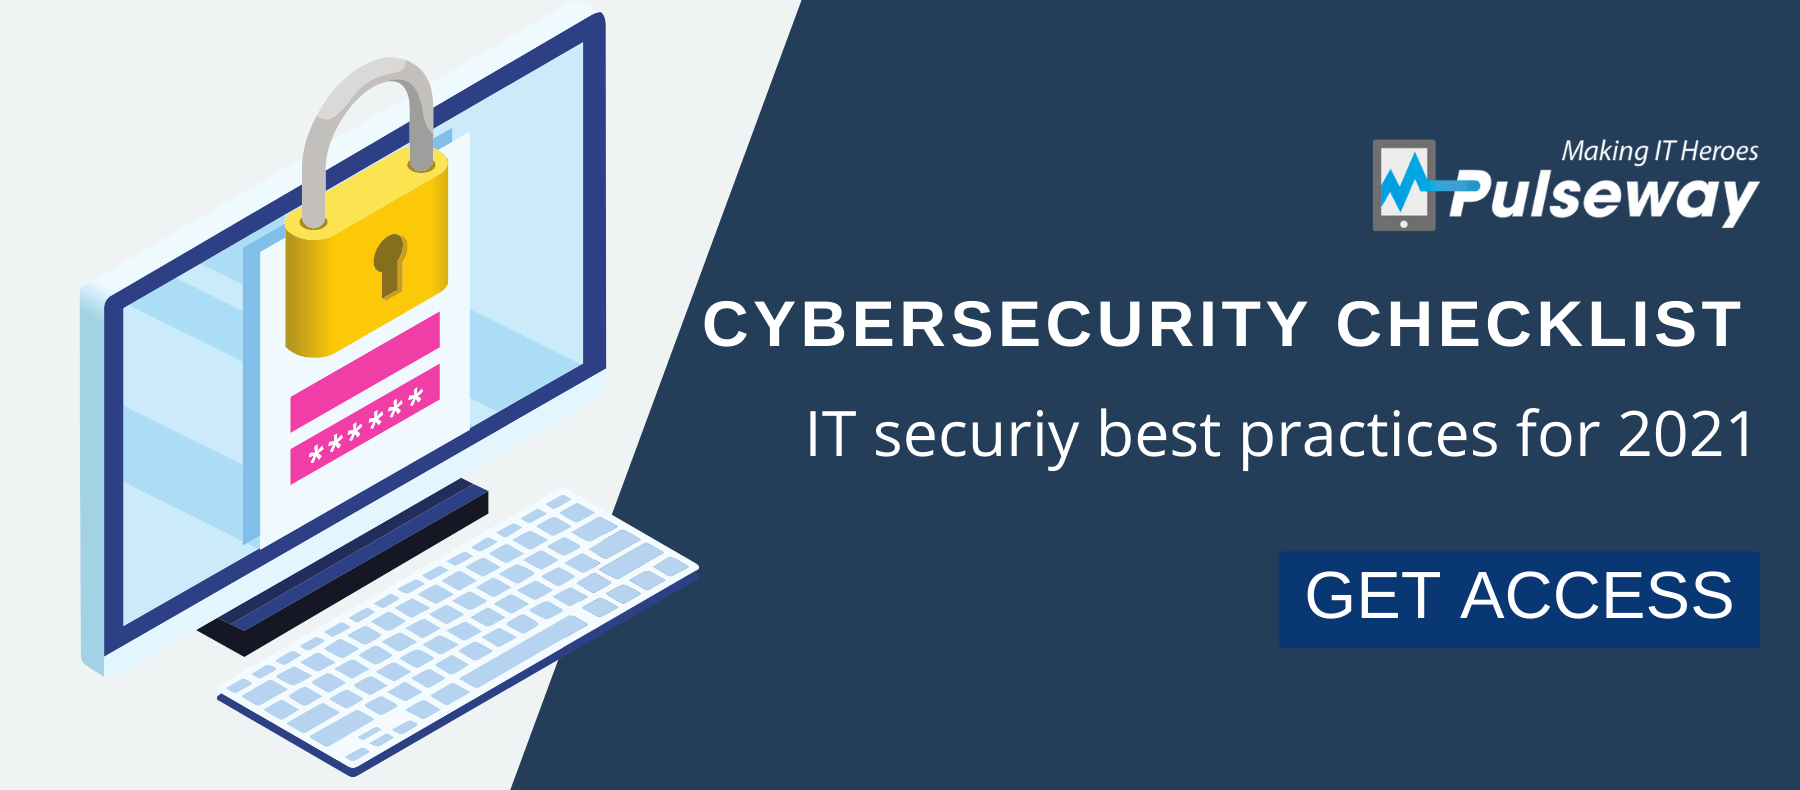 Cybersecurity Checklist: Security Best Practices 2021